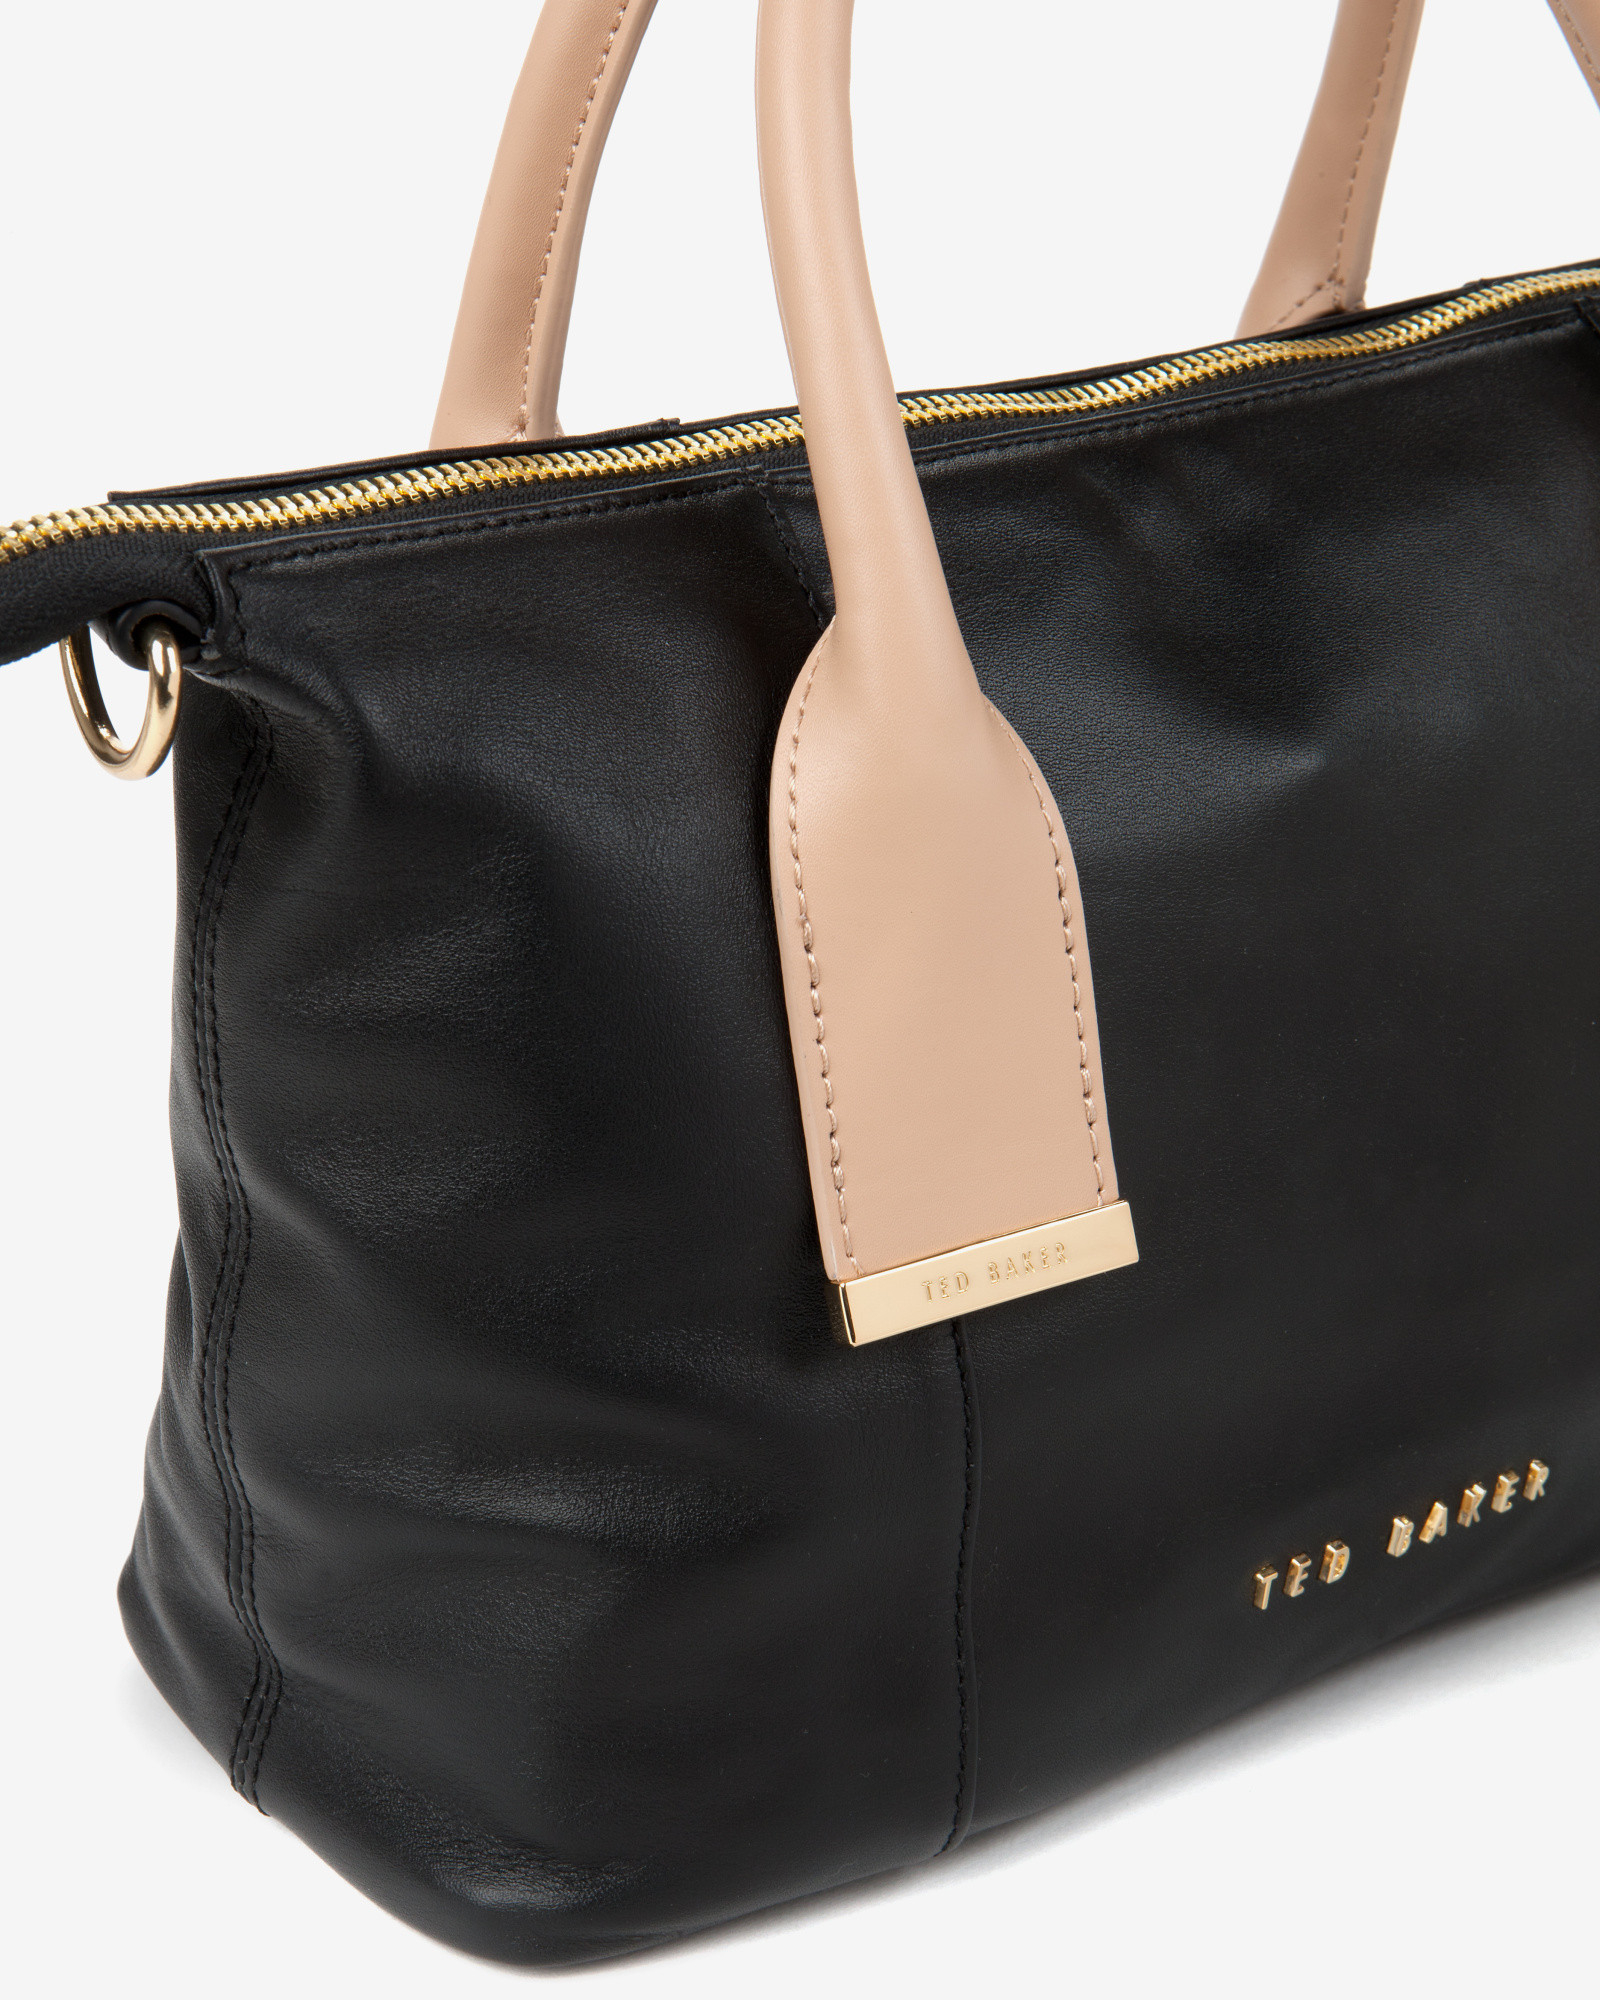 16505c8cf Ted Baker Leather Mini Tote Bag in Black - Lyst